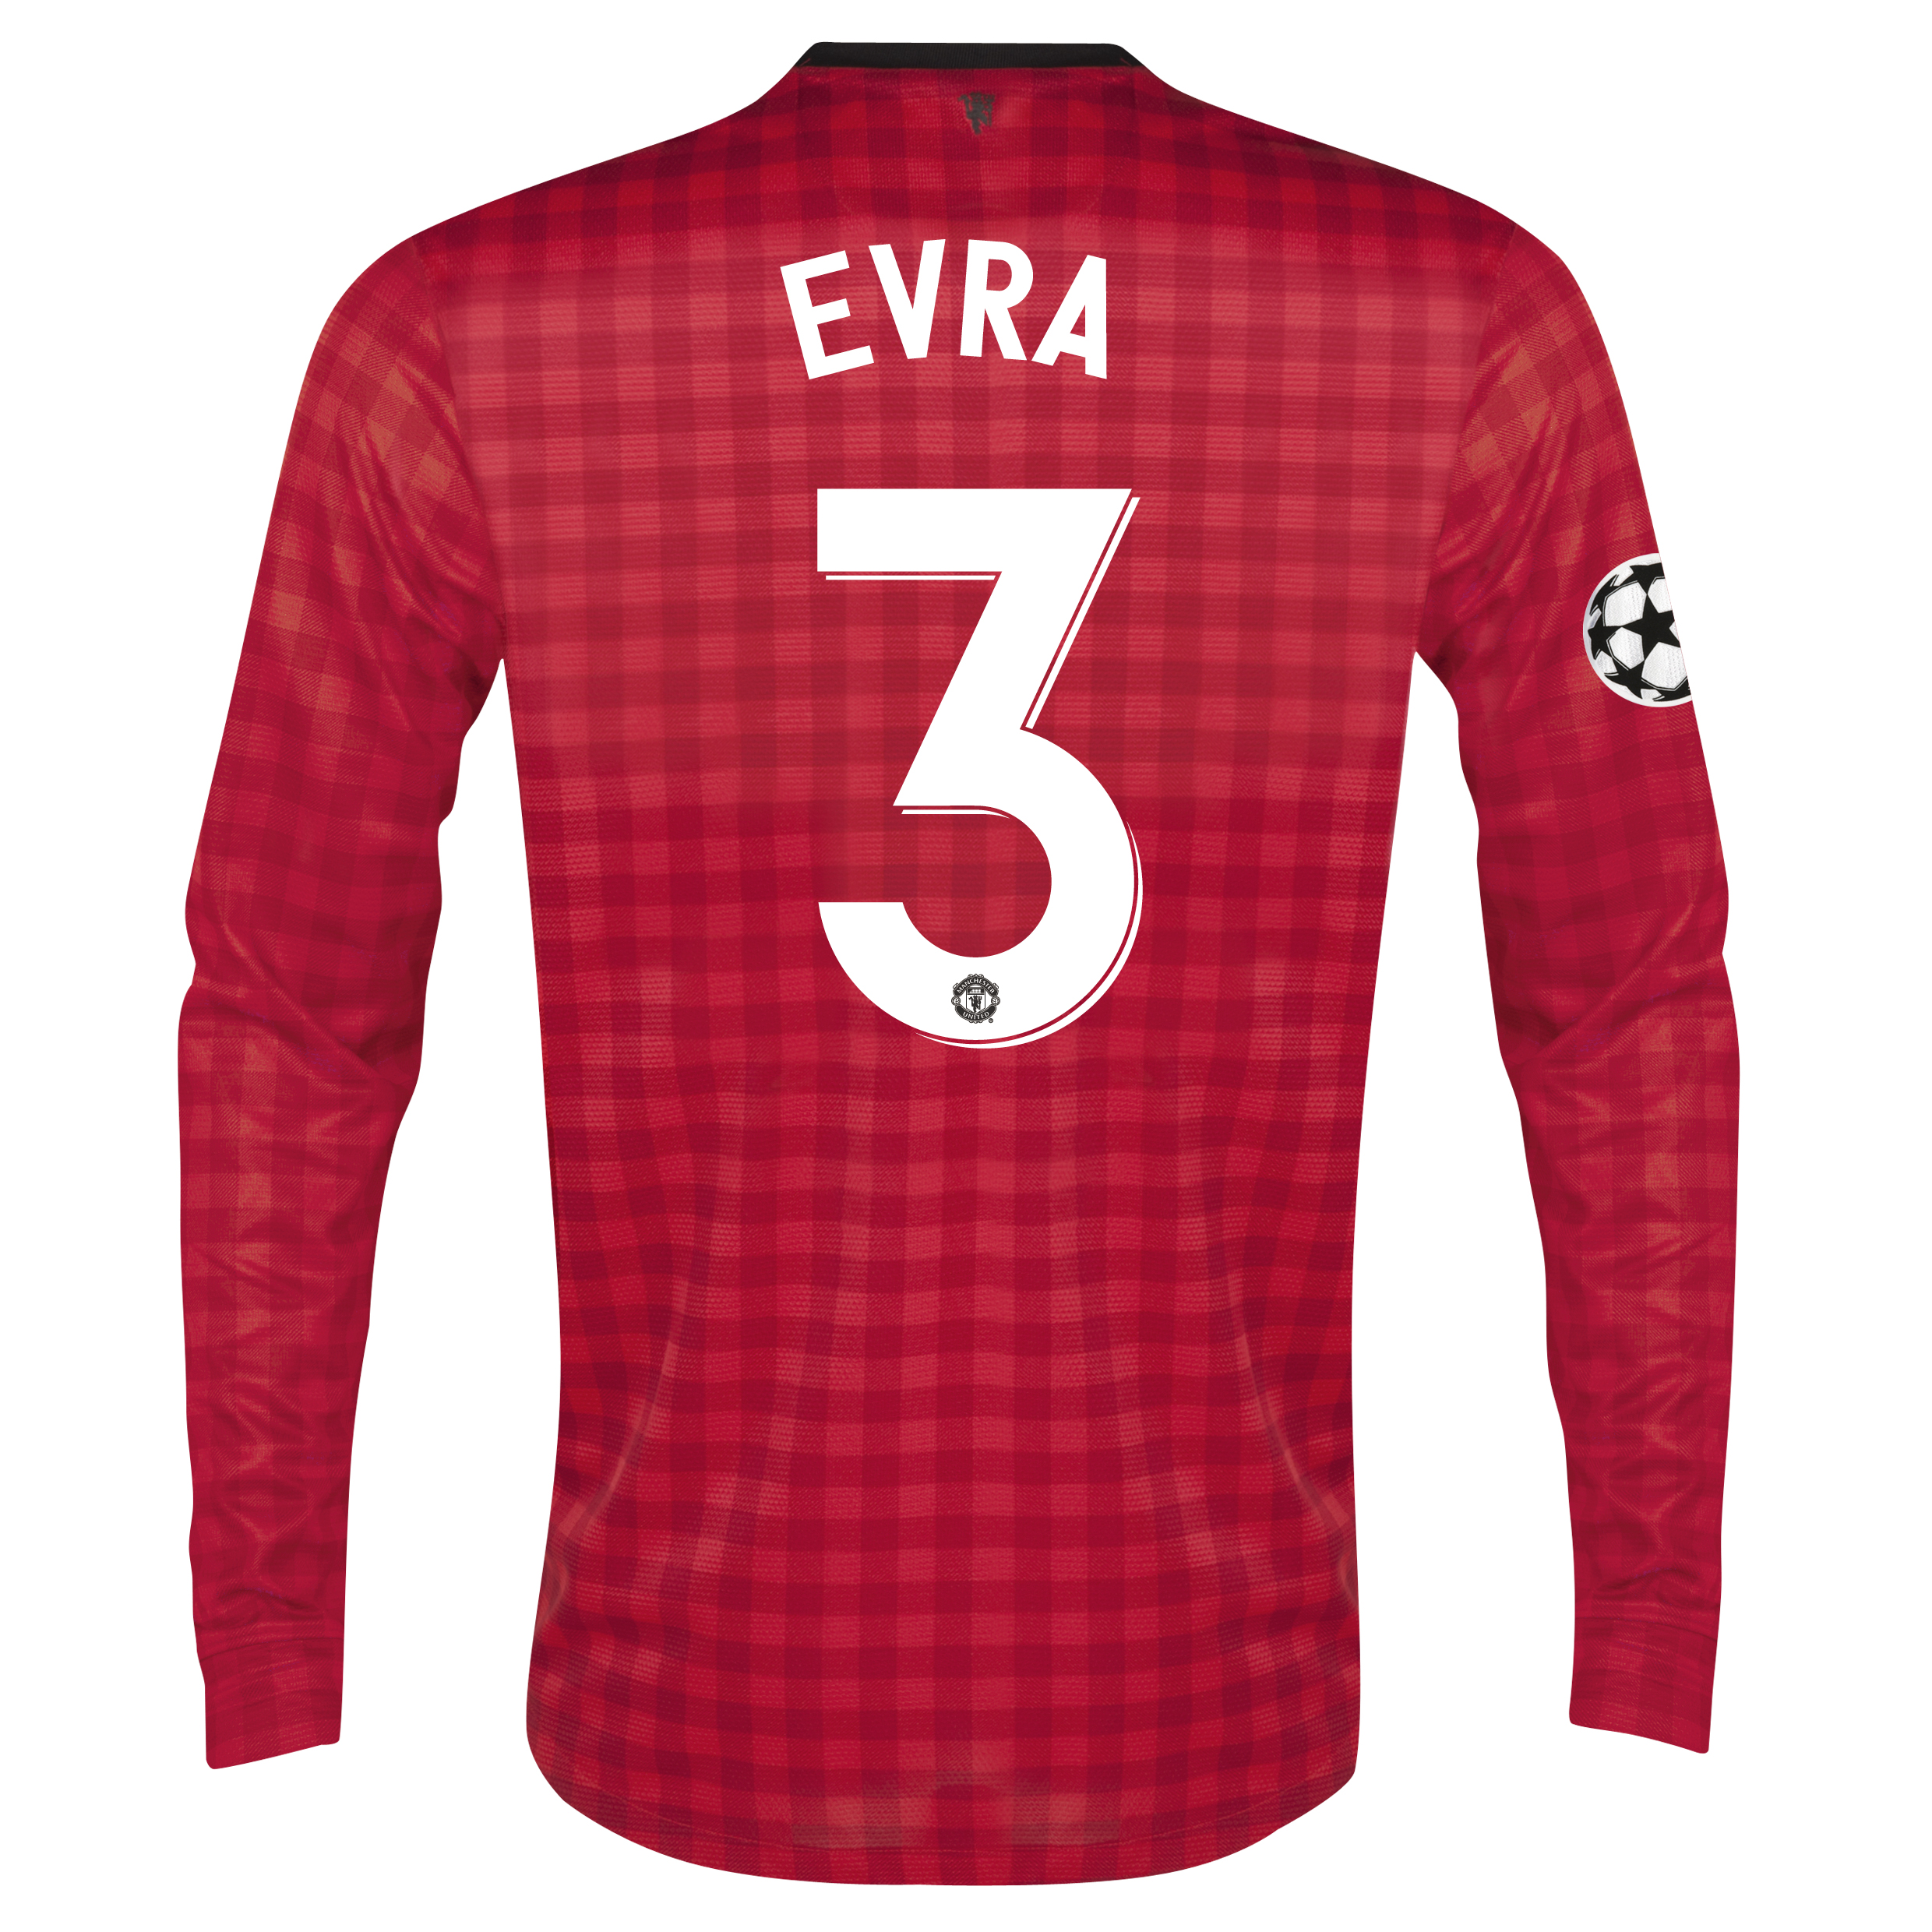 Man United UEFA Champions League Home Shirt 2012/13 - Long Sleeved with Evra 3 printing